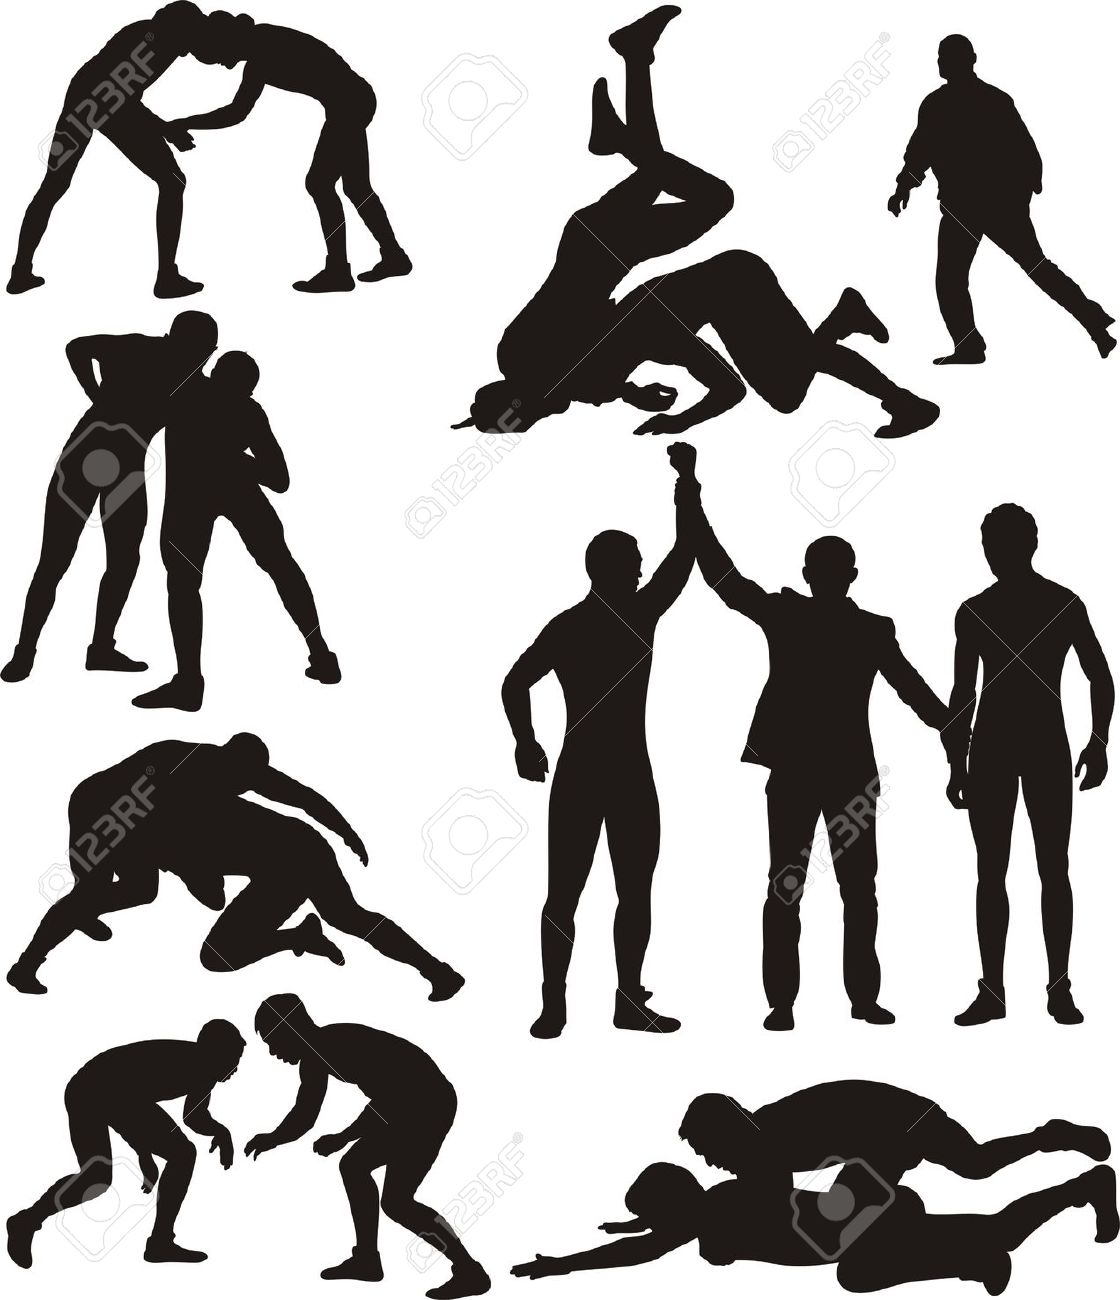 Wrestler front stance clipart banner library download Free Horse Clipart wrestling, Download Free Clip Art on ... banner library download